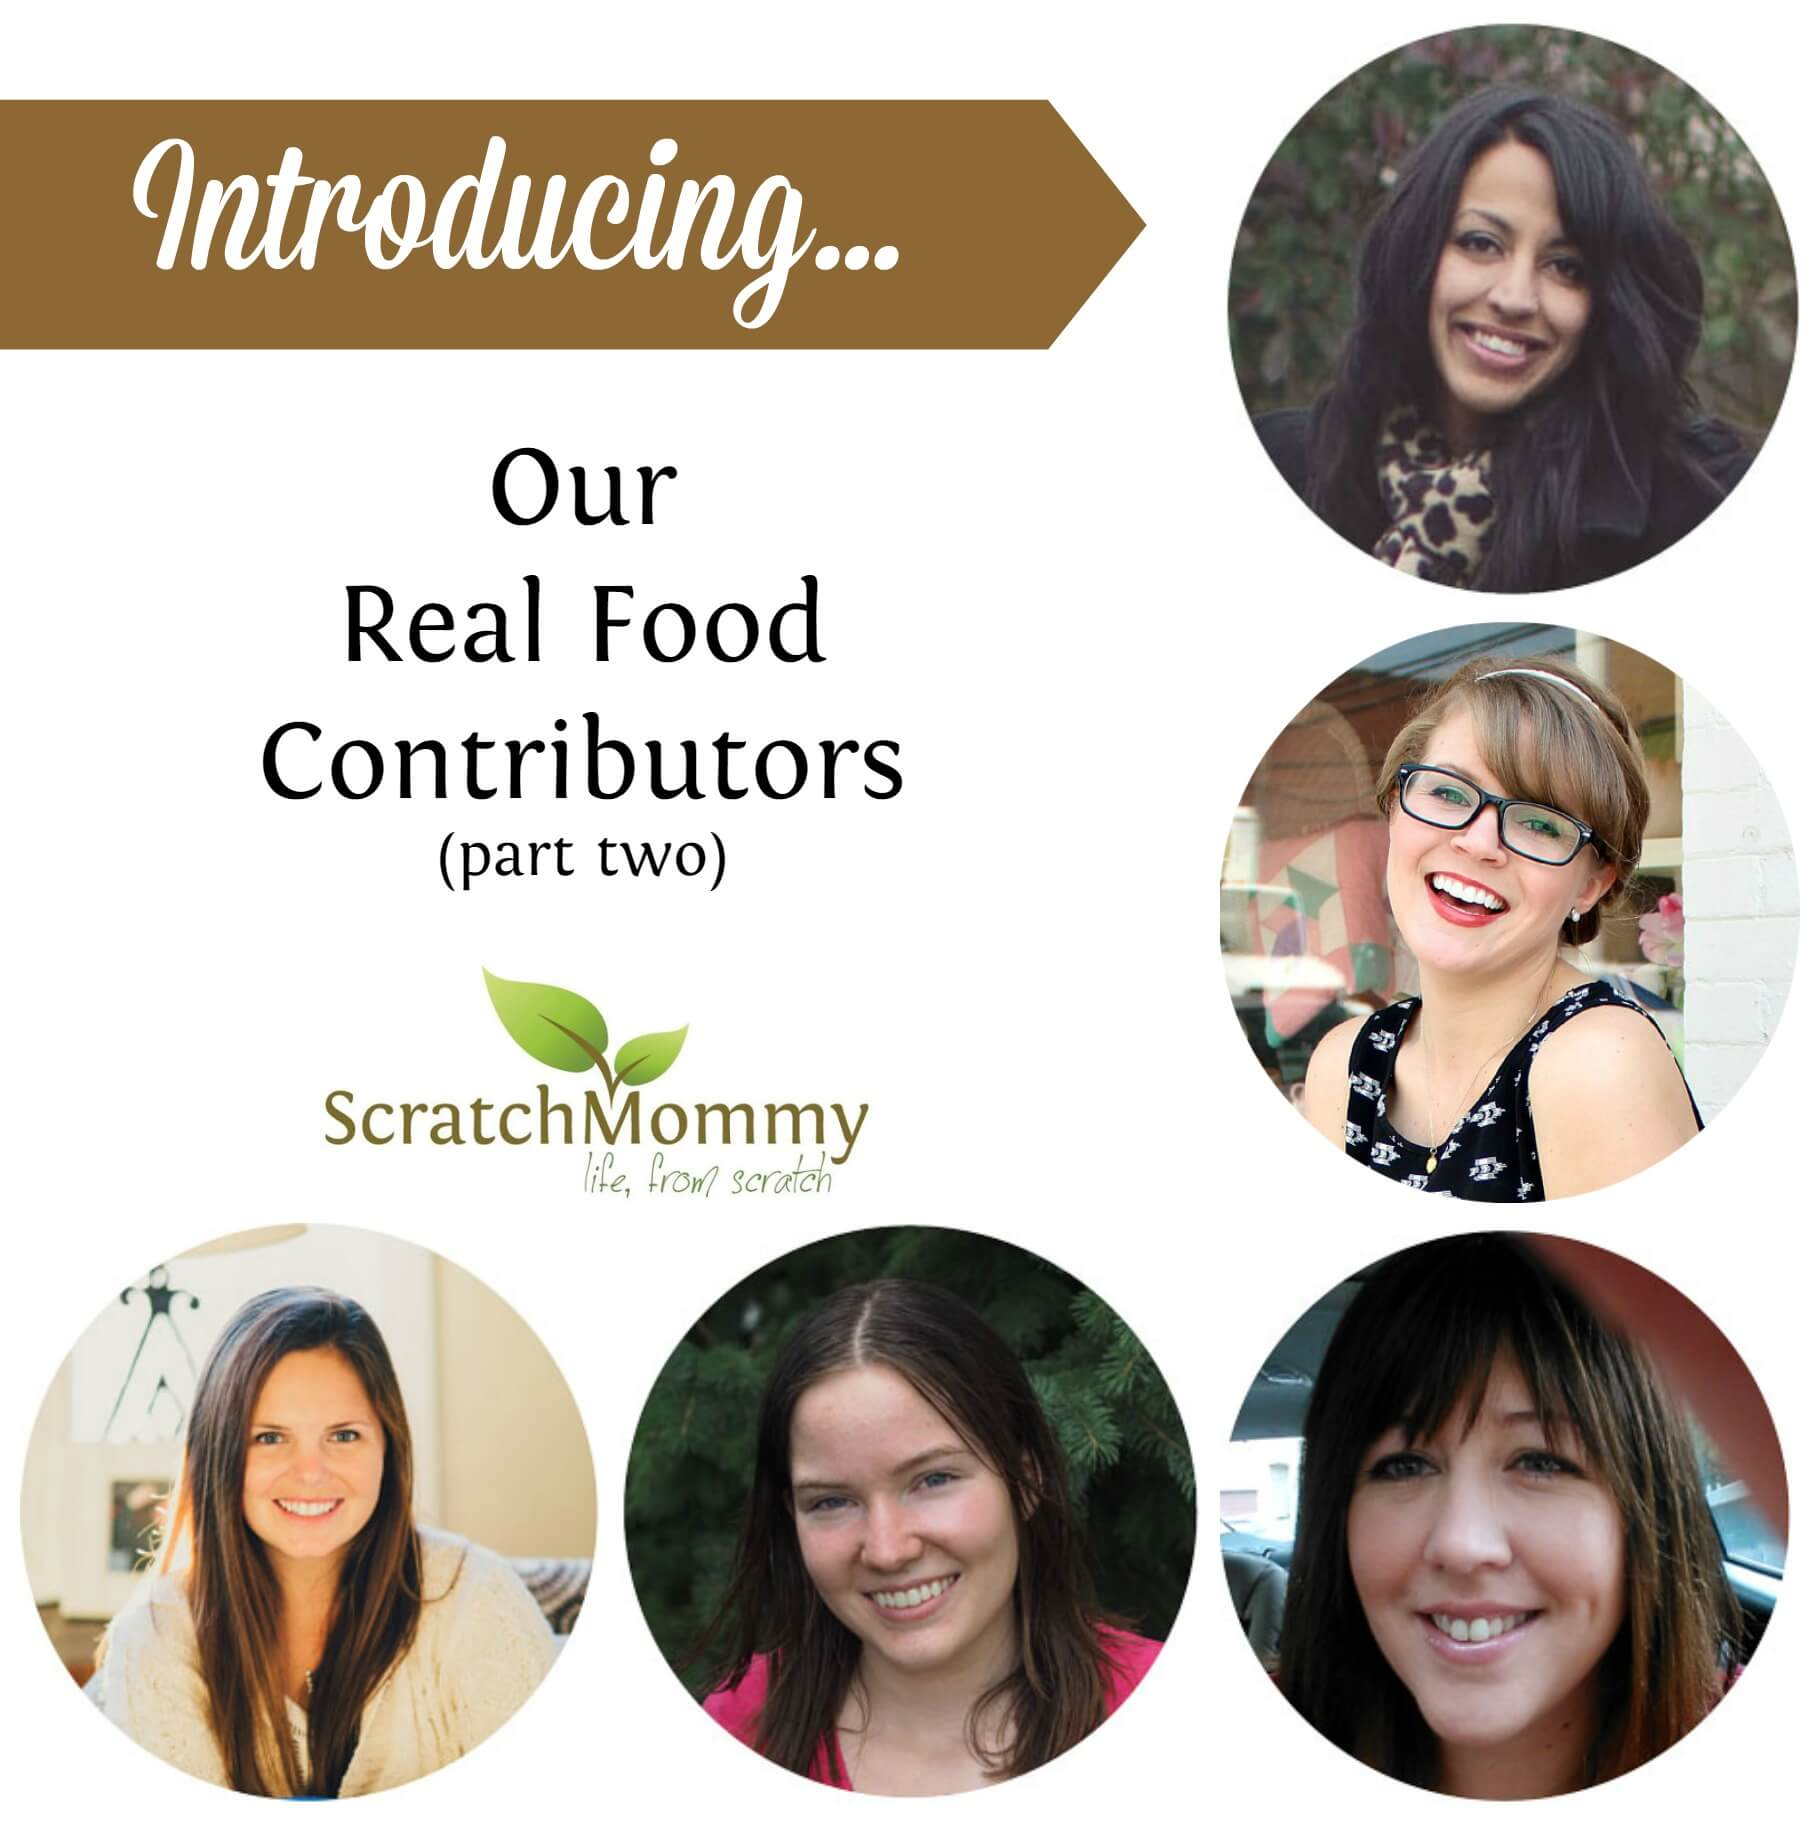 Introducing the second part of our amazing real food contributors for the re-birth of Scratch Mommy!